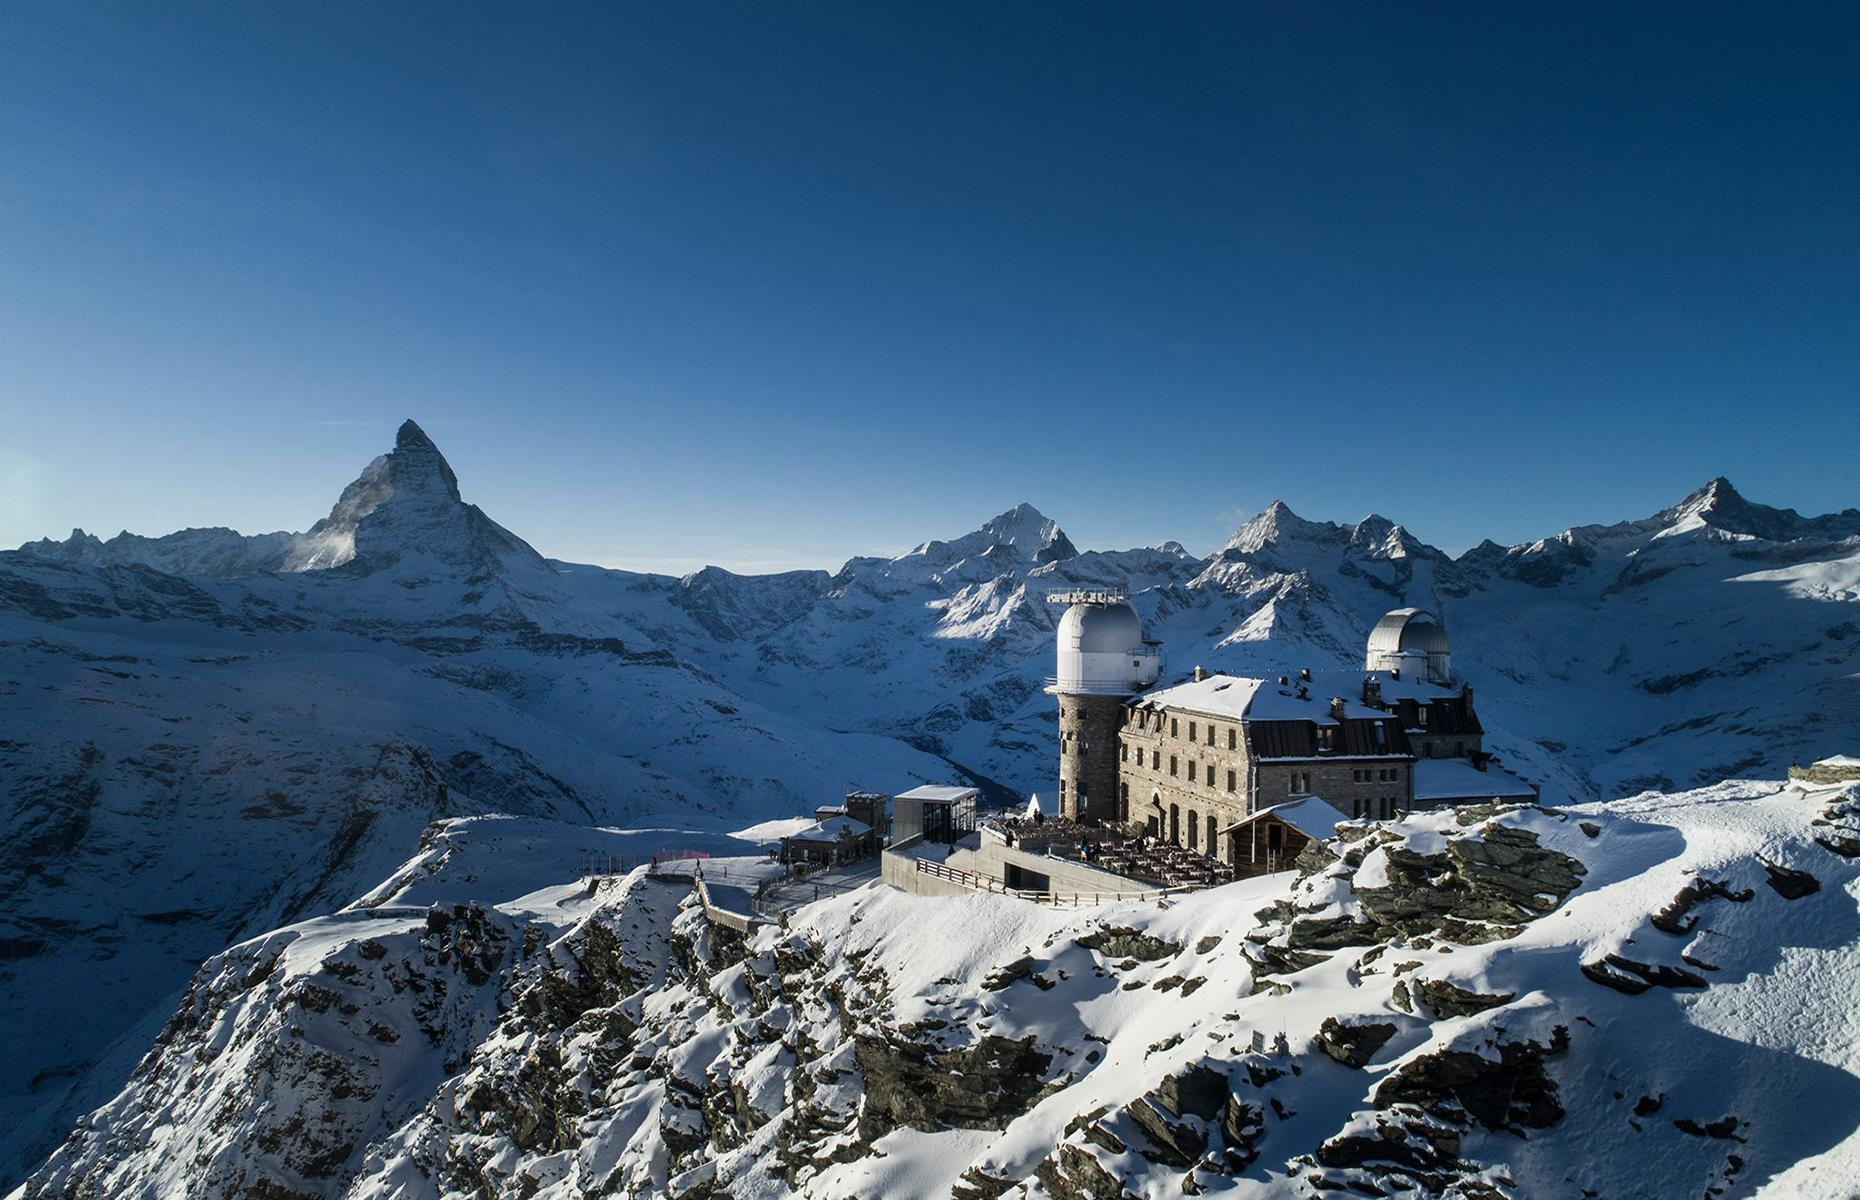 Slide 11 of 32: You can almost touch the stars at 3100 Kulmhotel Gornergrat. It's located more than 10,000 feet (3,100m)up Gornergrat ridge in the Swiss Alps. With unparalleled views of the Matterhorn, the hoteloffers anincredible mountain experience. There are 22 comfortable rooms, two restaurants and countless opportunities to make the most of your surroundings. Although anyone can book, it's advised not to stay at the hotel if you've visited a foreign country in the last 14 days before your stay, which also includes traveling to Switzerland.